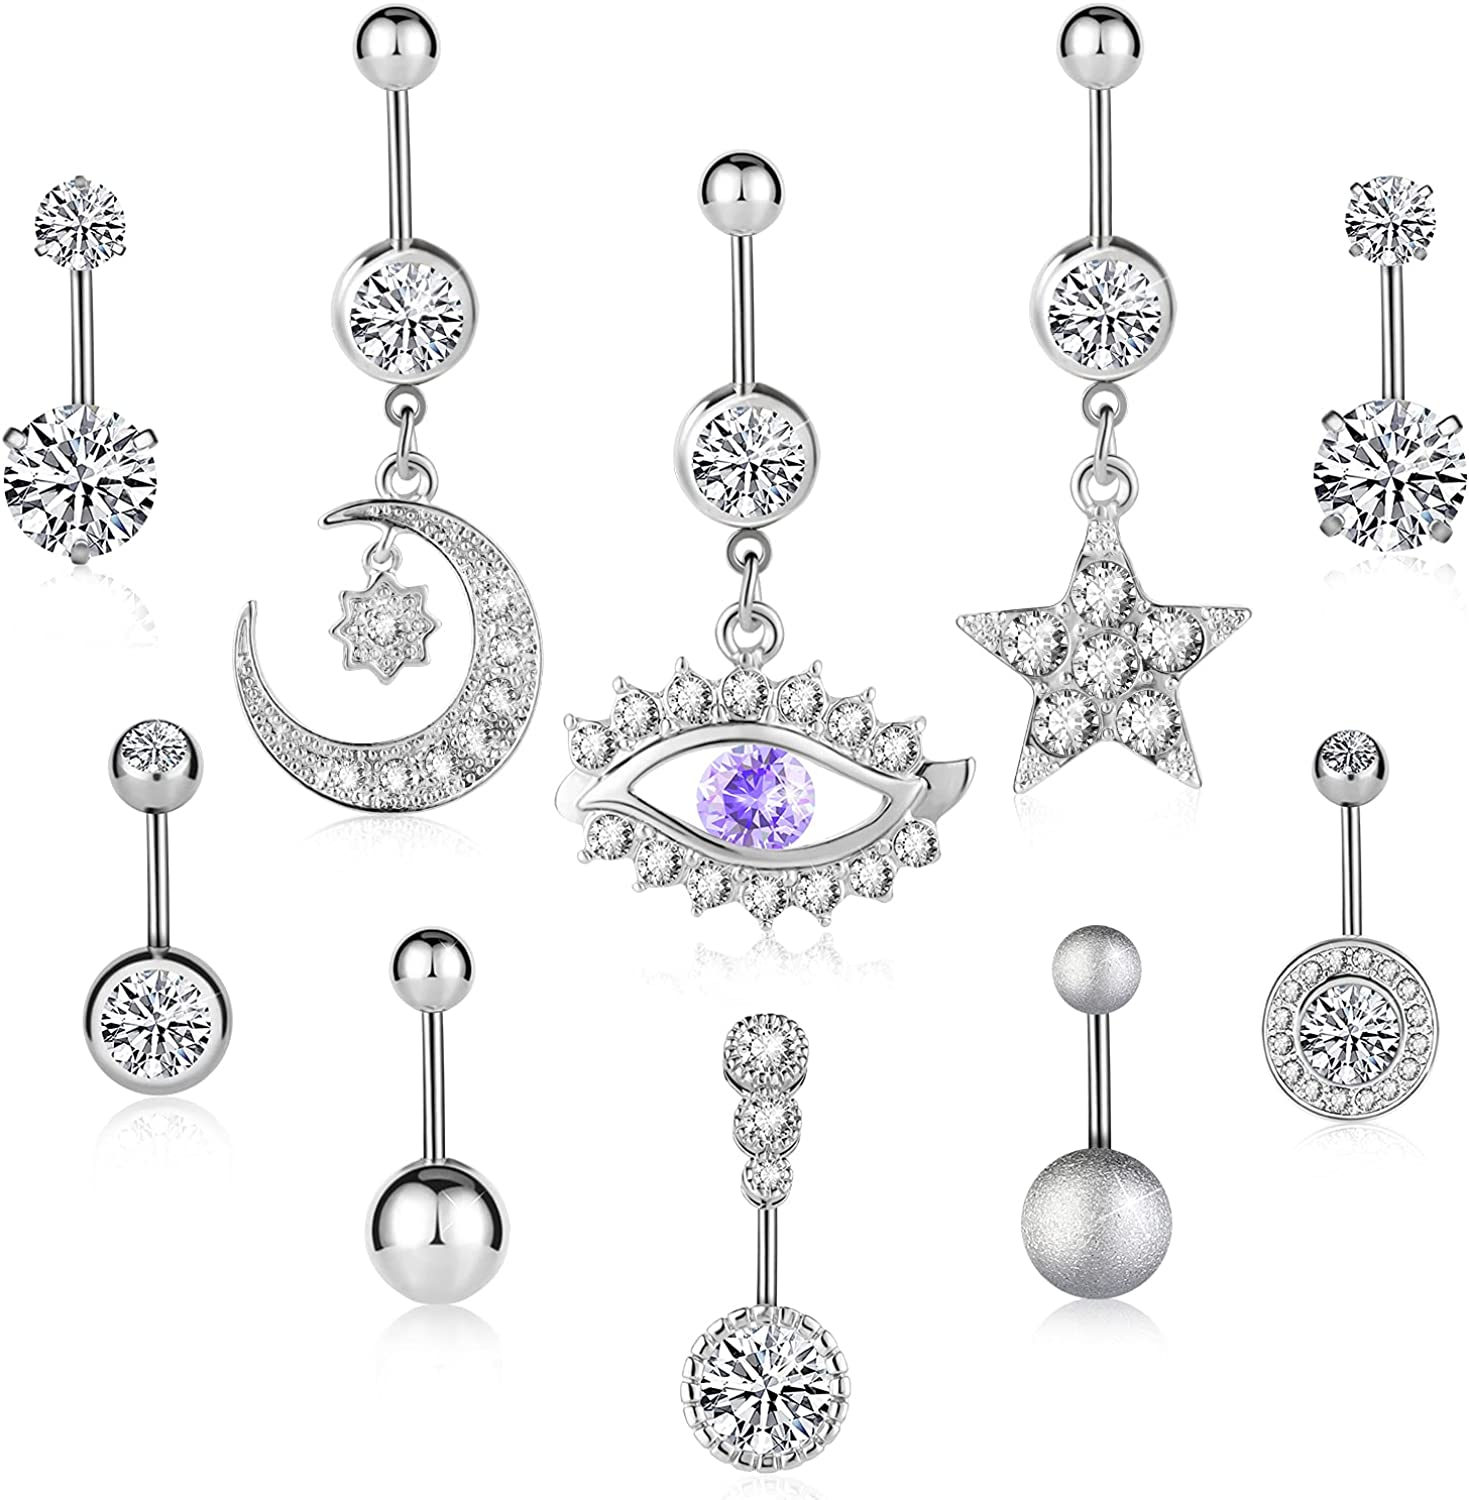 ALIWOLF Belly Button Rings Dangle Body Jewelry Surgical Stainless Steel CZ Navel Rings Body Jewelry for Women and Girls